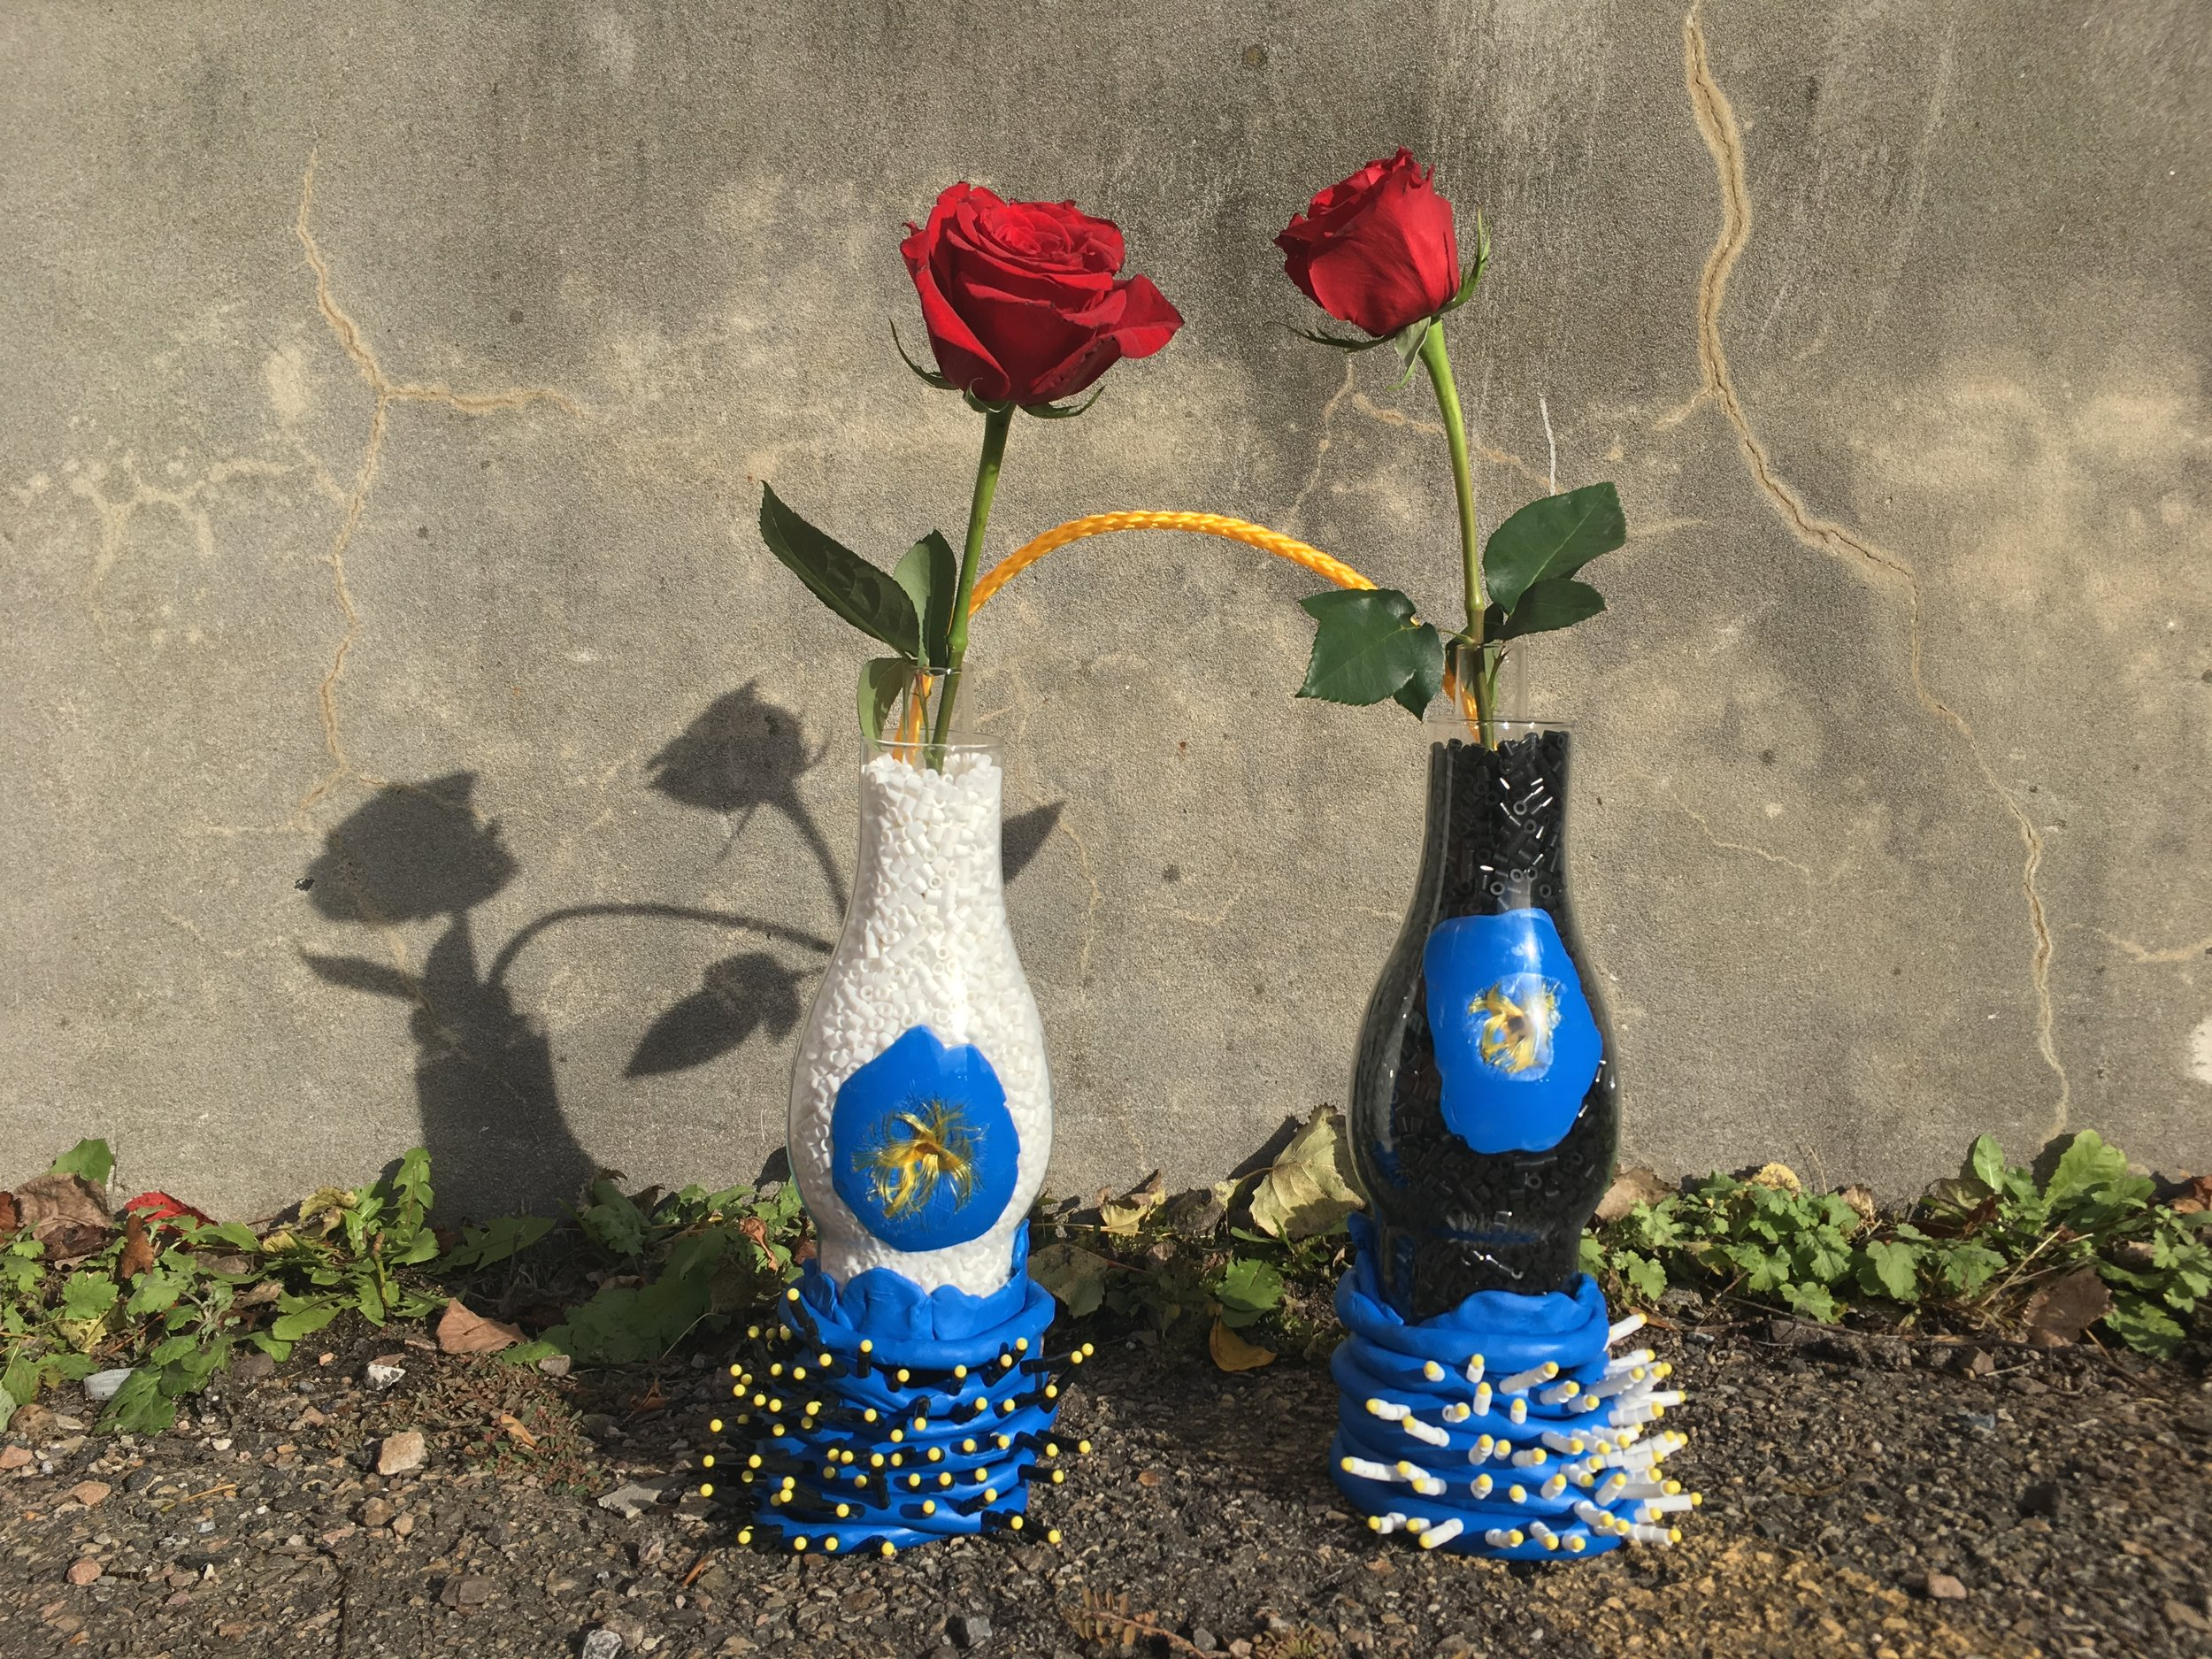 Materials: glass oil lamp chimneys, modeling clay, Perler beads, quilting pins, test tubes, roses, rope.